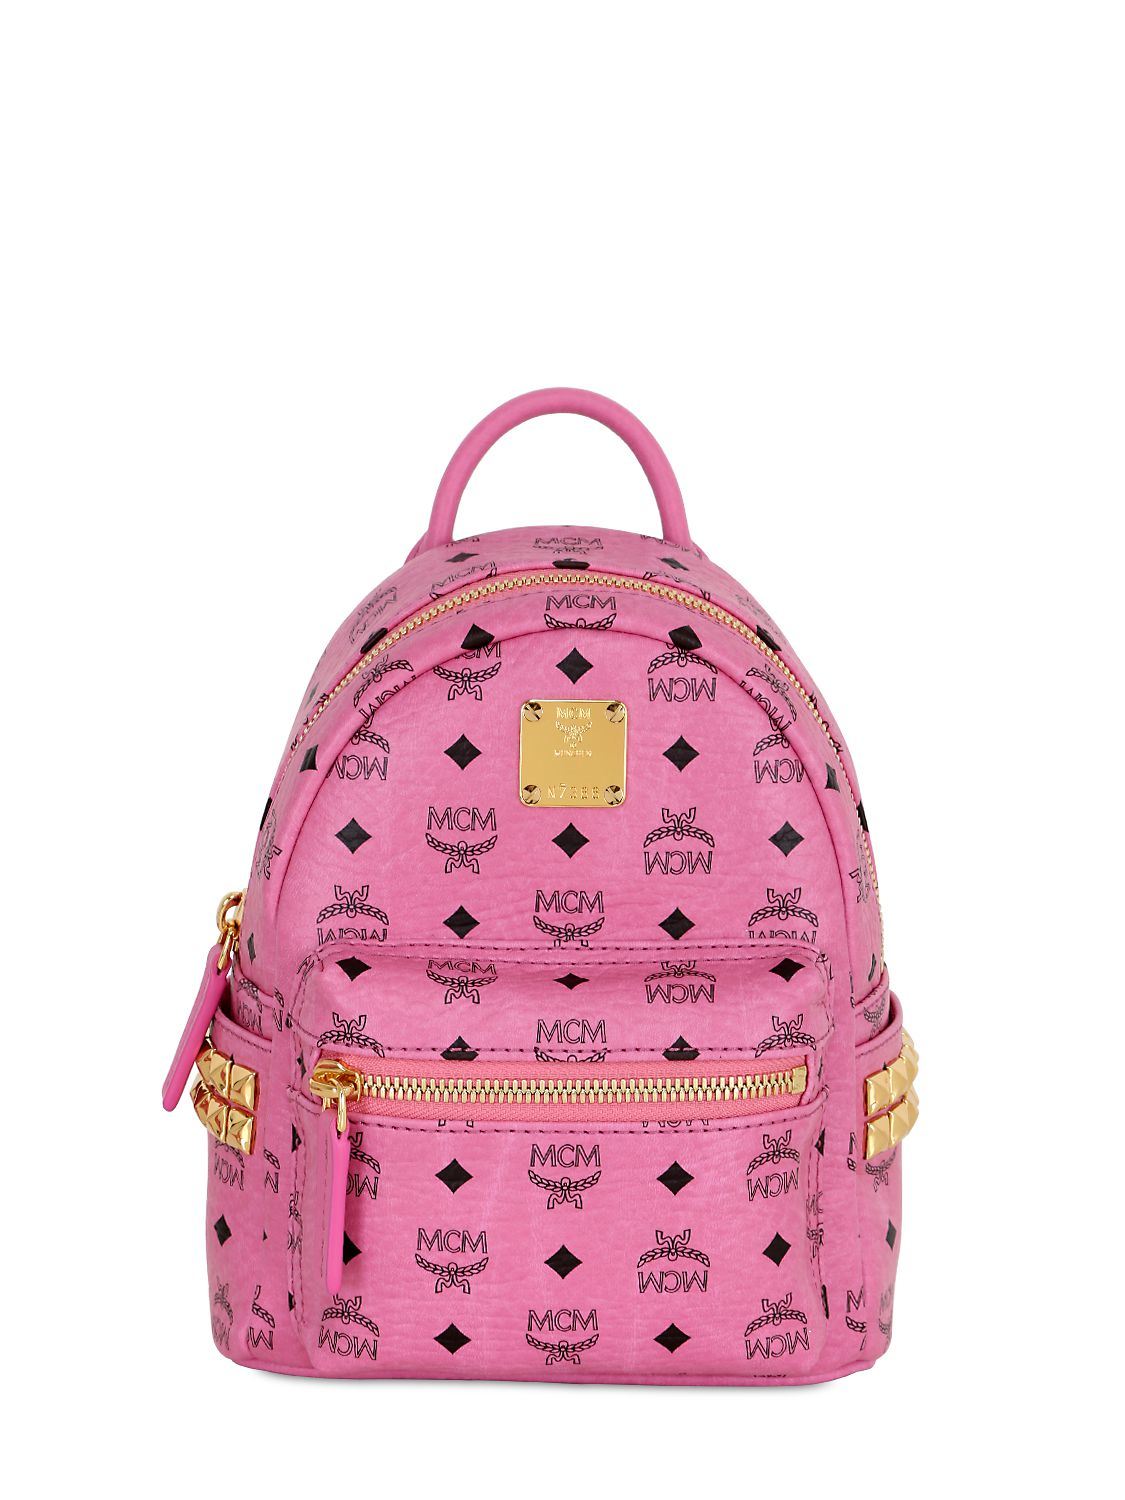 Lyst - MCM Extra Mini Stark Coated Canvas Backpack in Pink 1823db2138af5